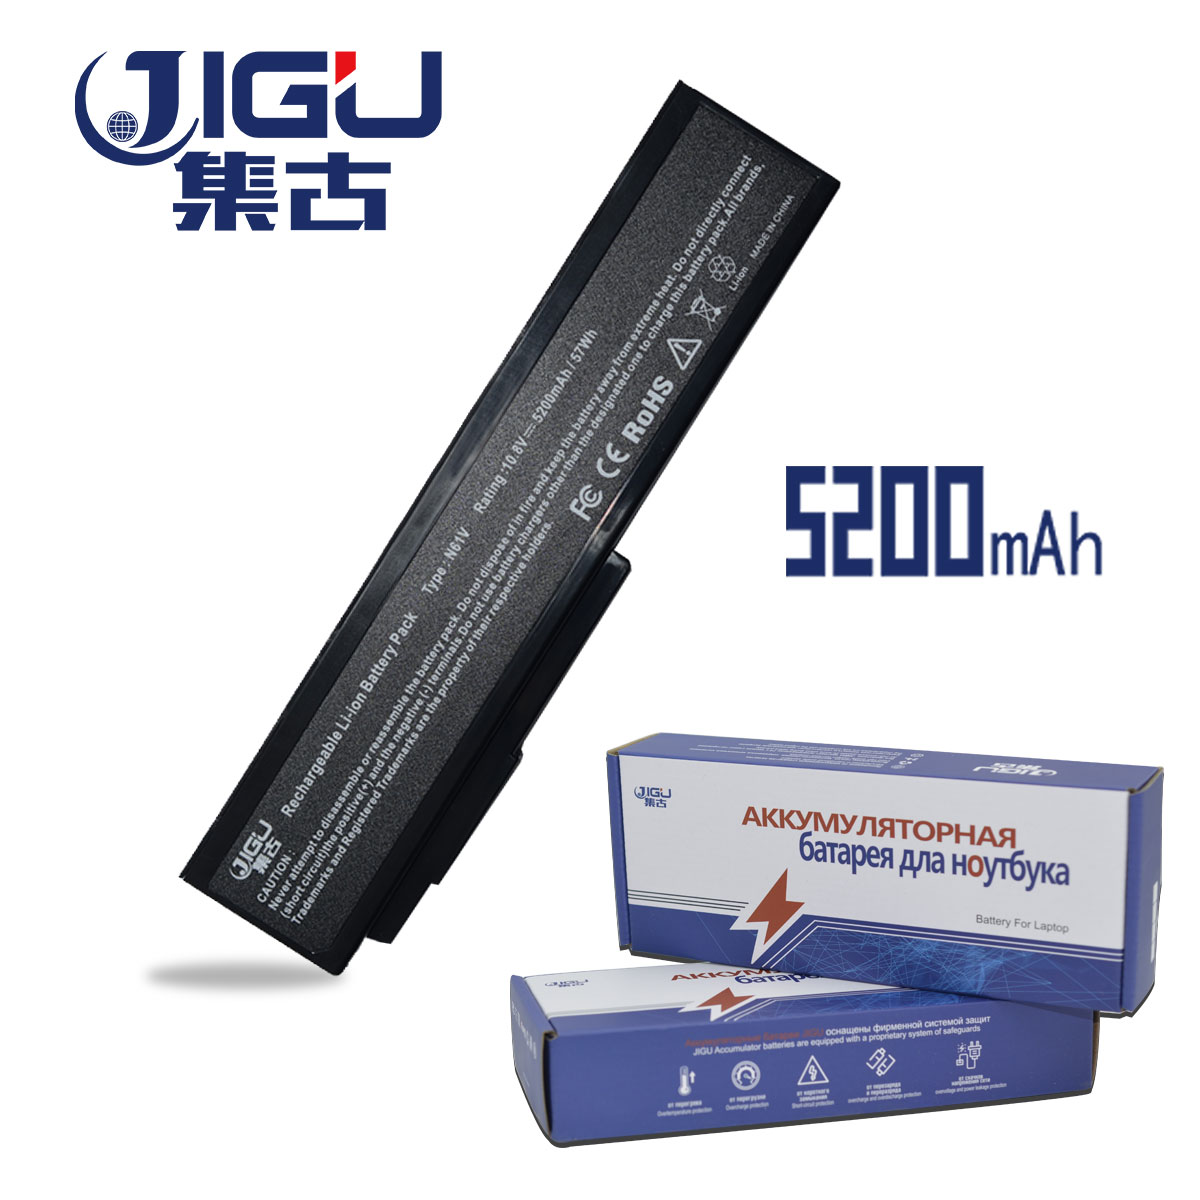 JIGU 6 Cells Laptop Battery For Asus M50 G50 X55 M60 N53 A32-M50 A32-N51 A33-M50 A32-X64